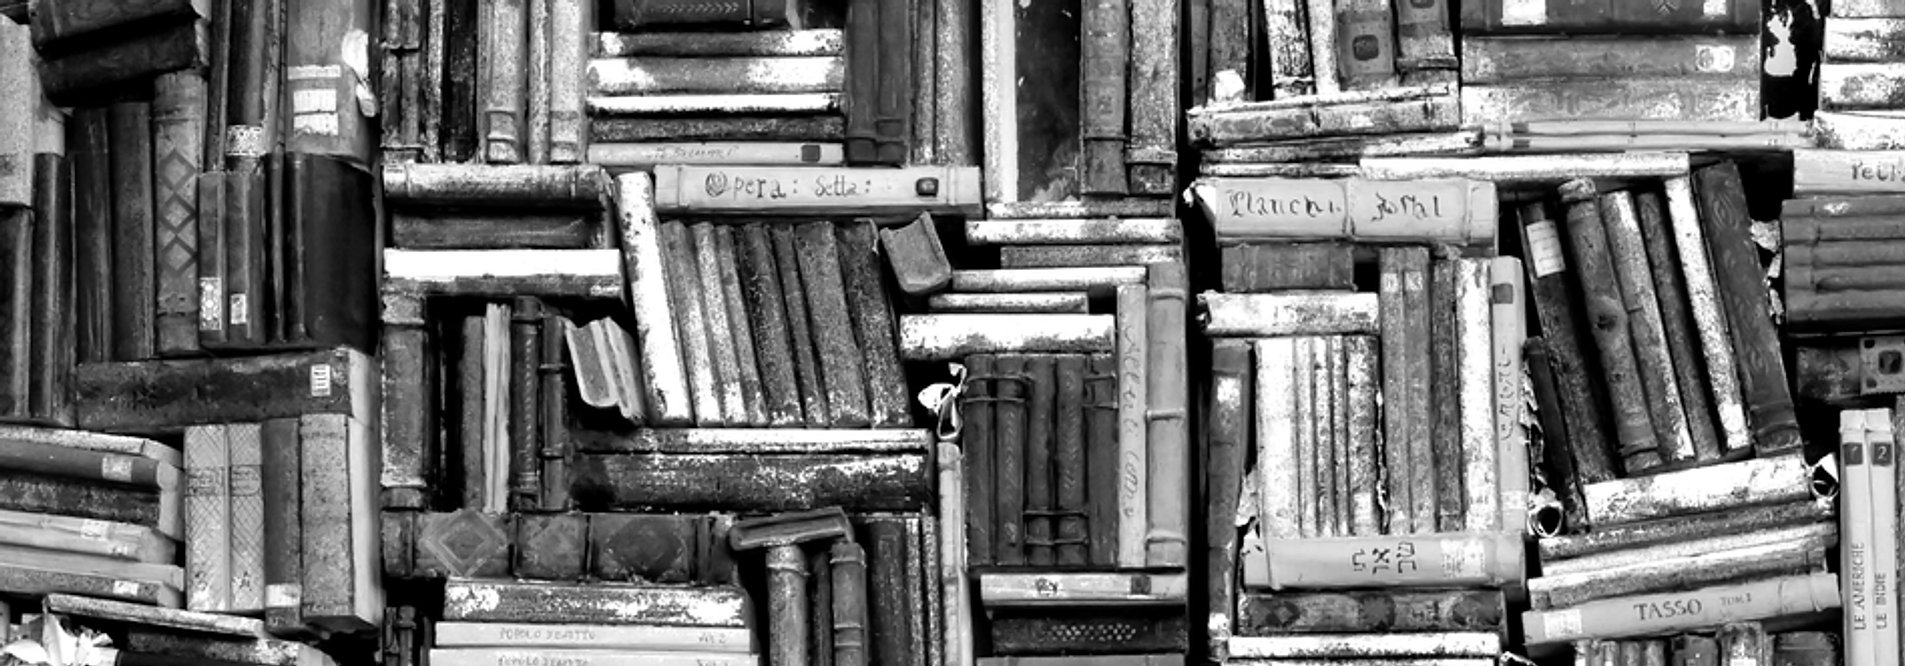 Black and White Library